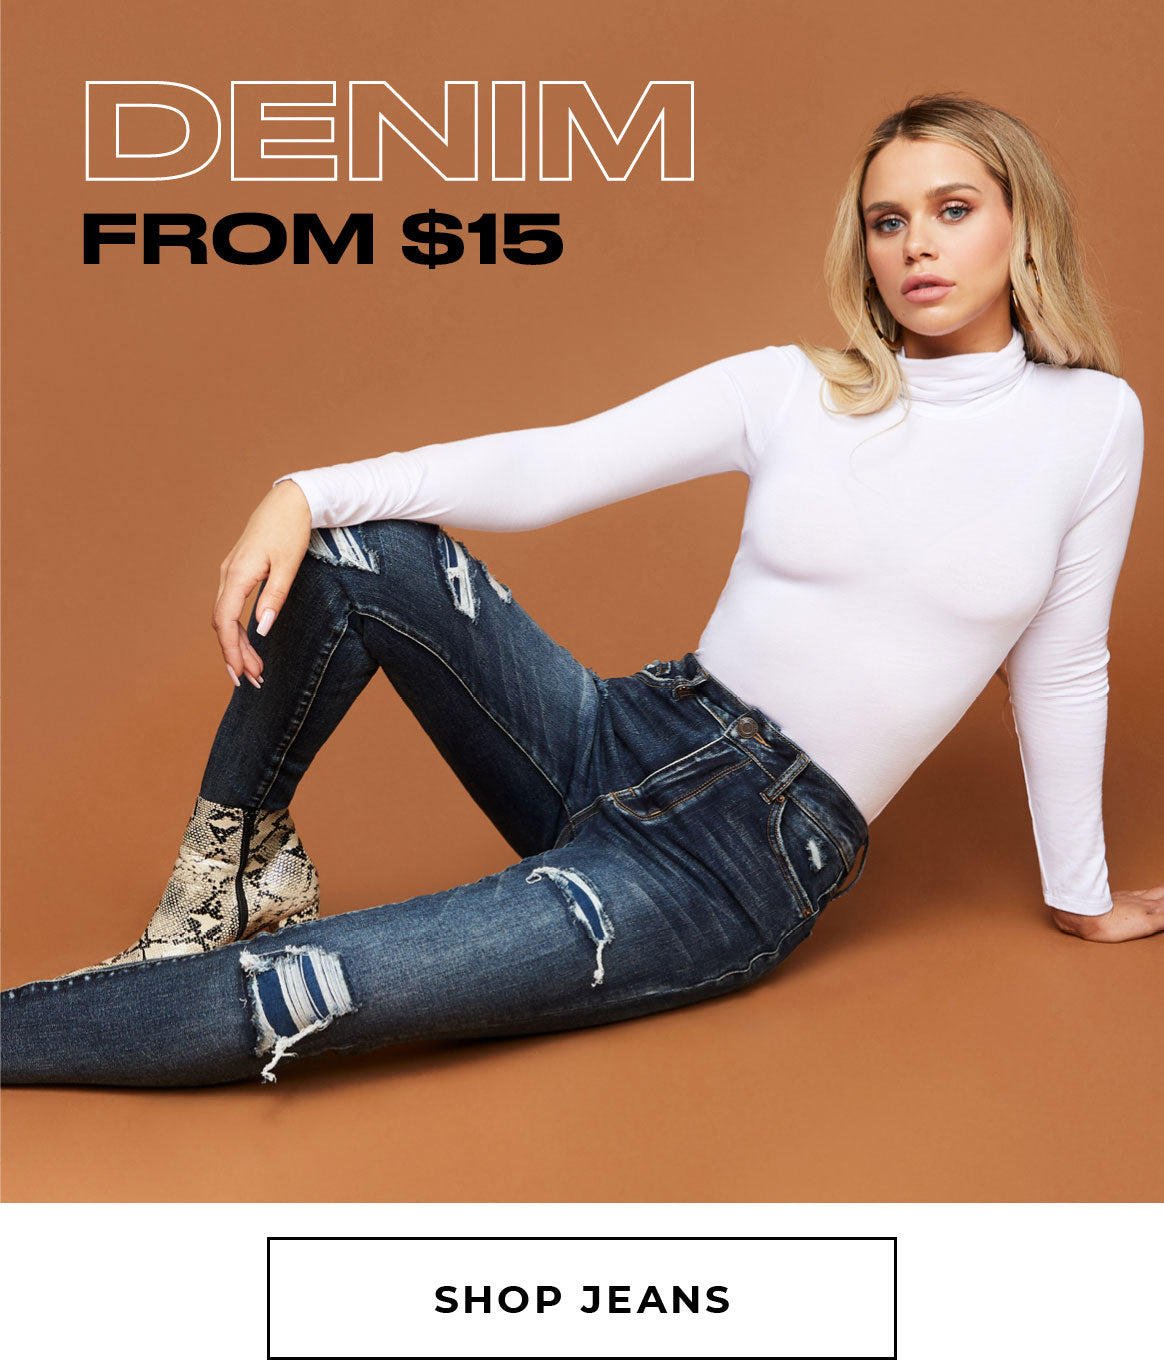 Charlotte Russe - Denim From $15 - Shop Jeans